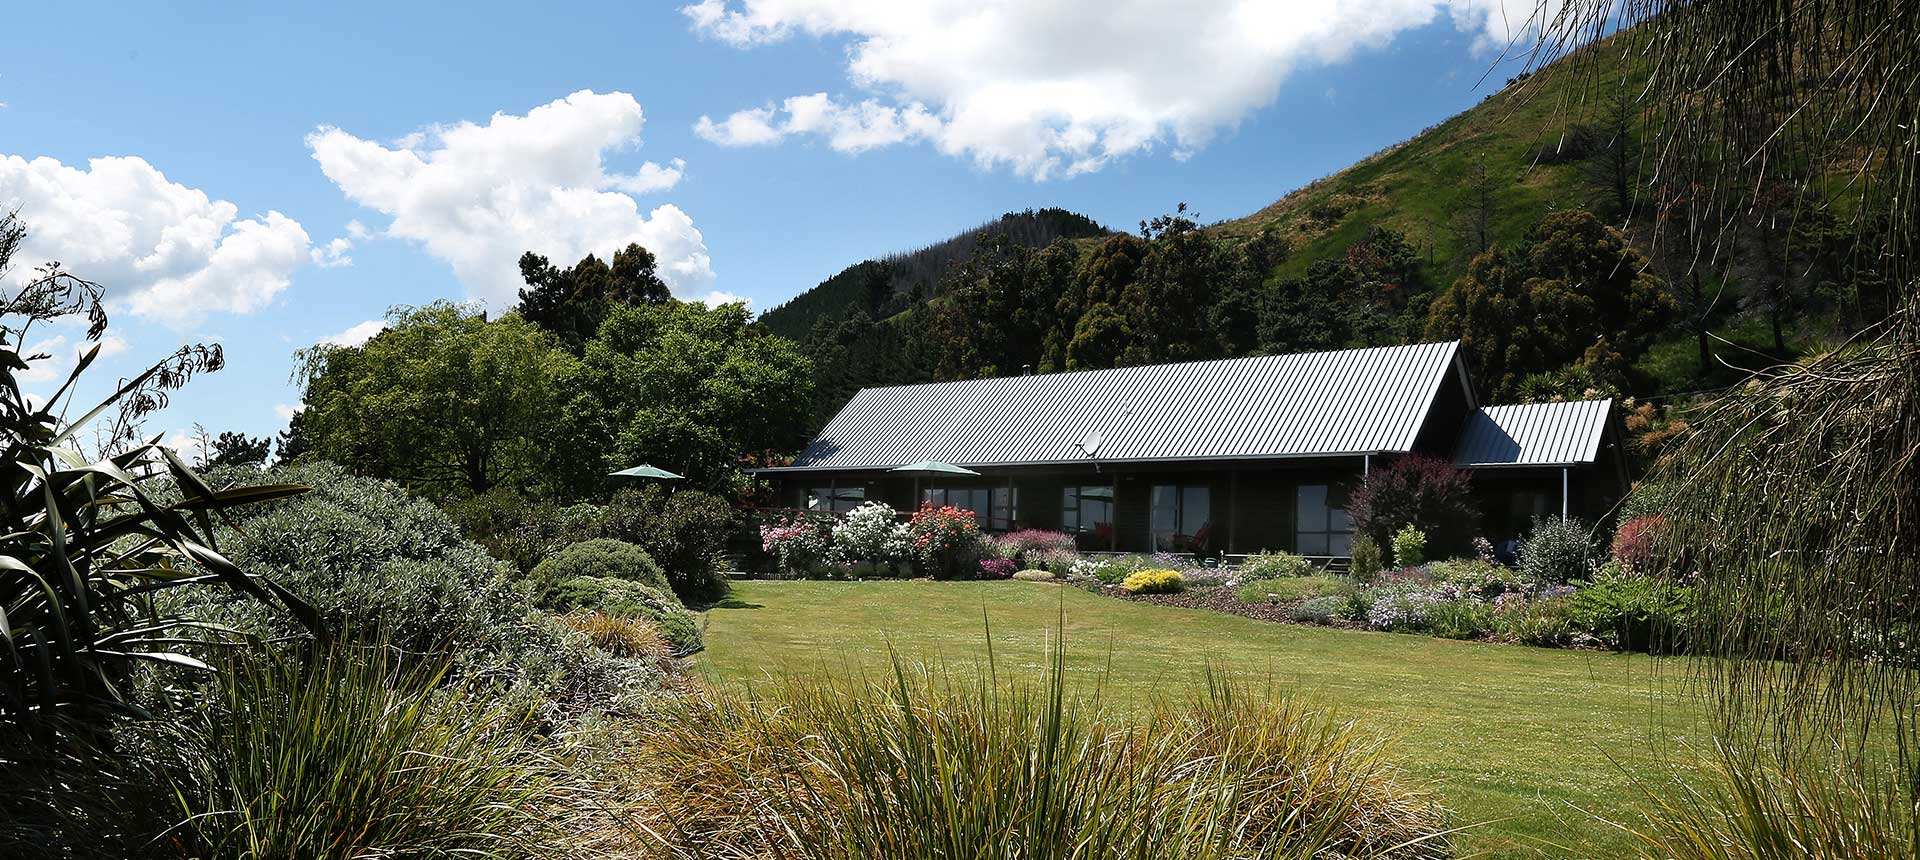 Fly Fishing Lodge Accommodation South Island New Zealand